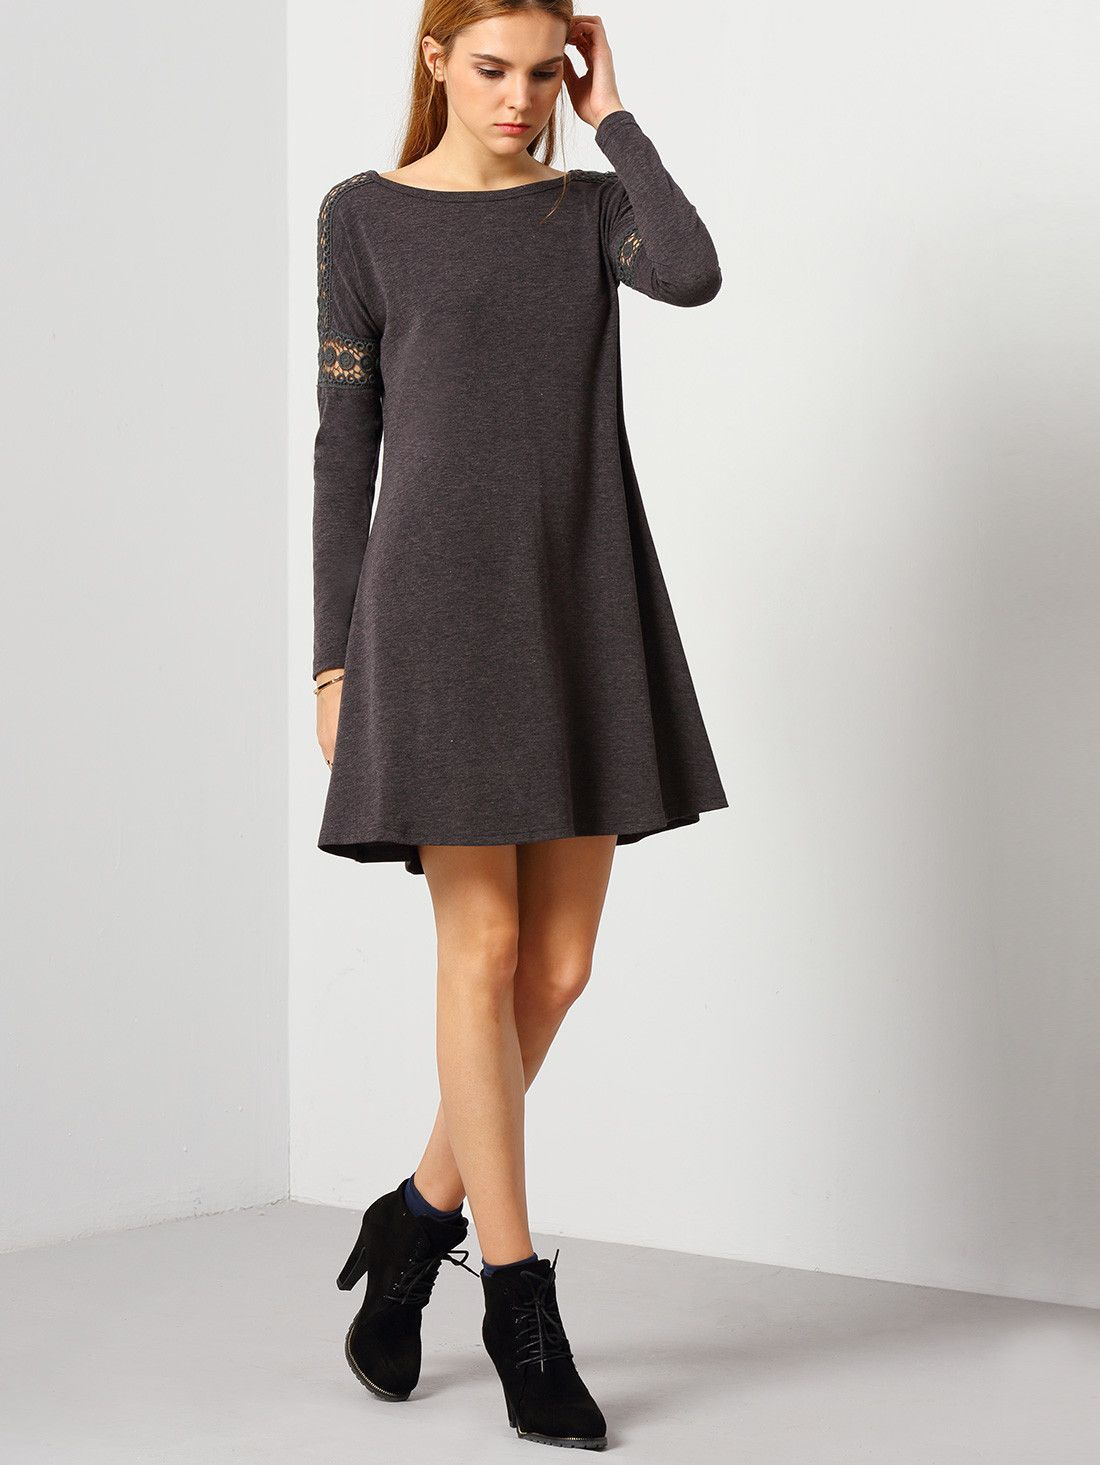 Grey round neck casual dress dresses pinterest rounding gray